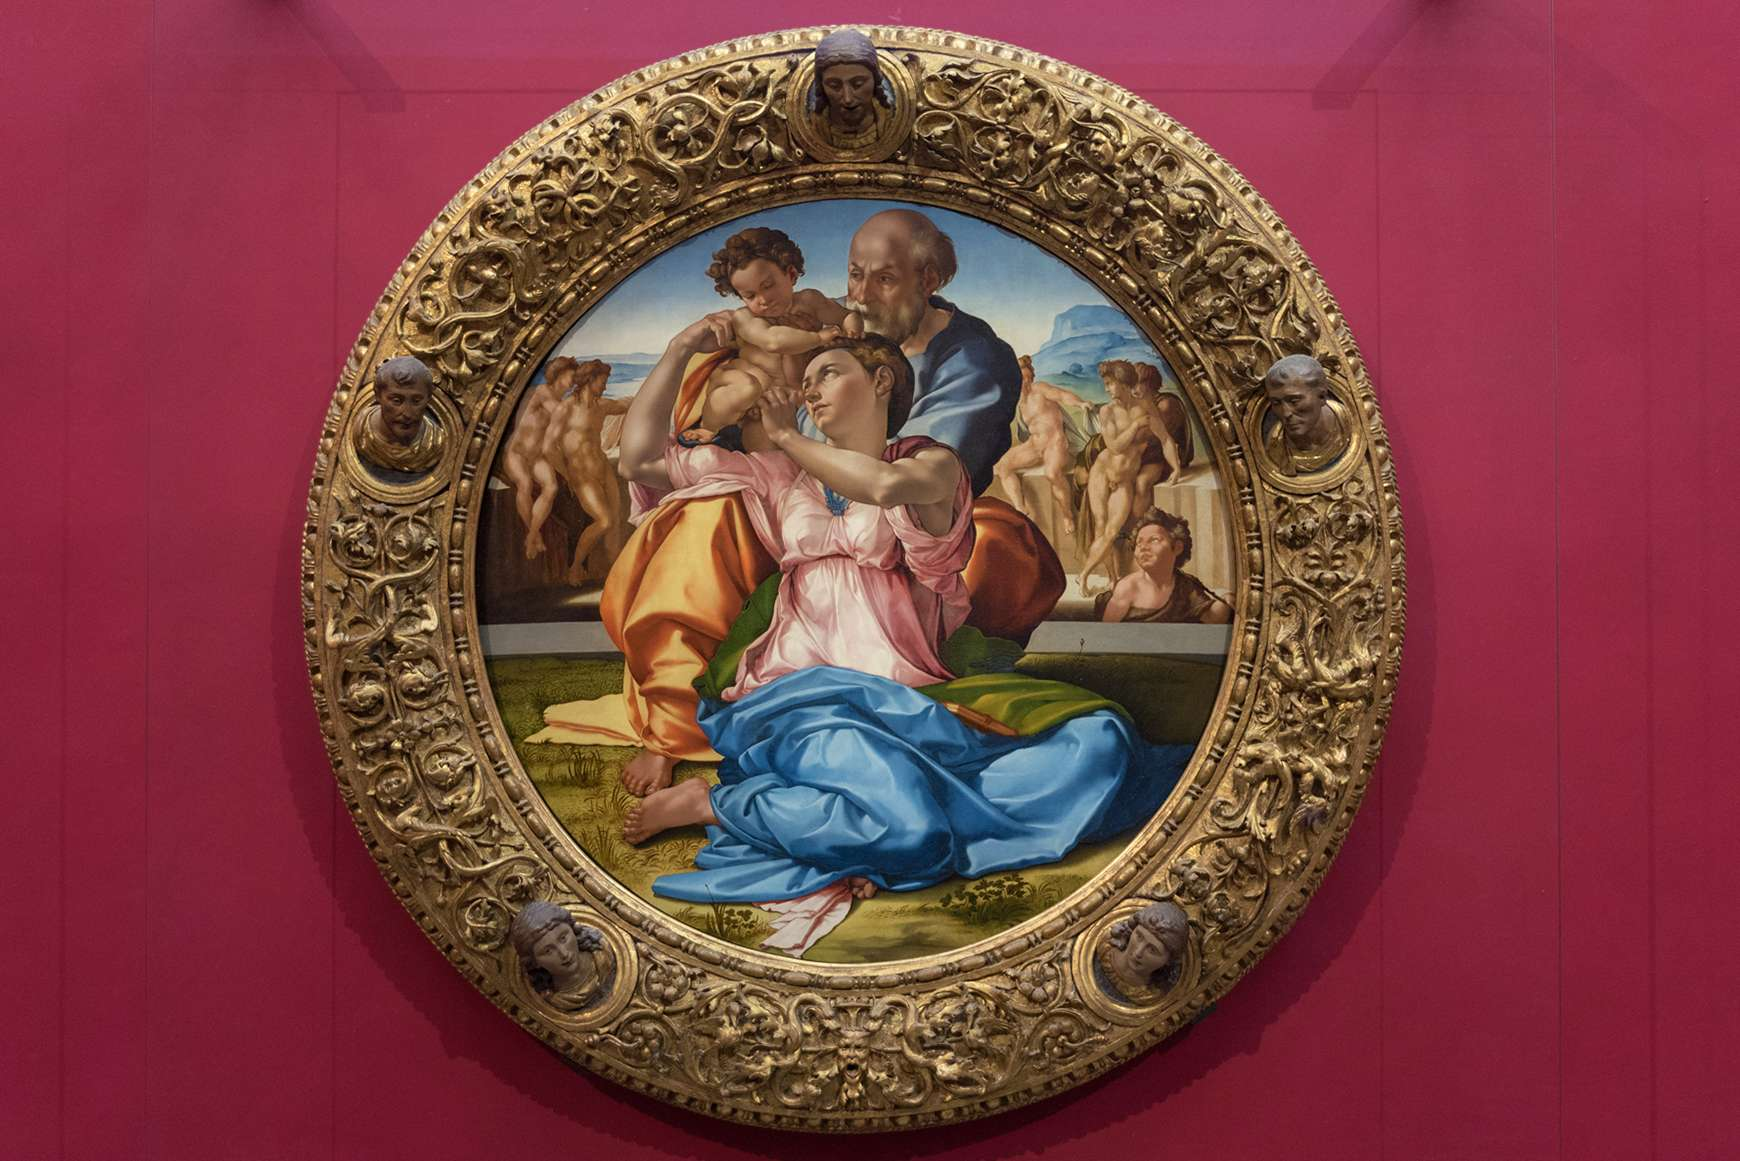 Round framed painting of the Holy Family in the Uffizi Gallery, Florence